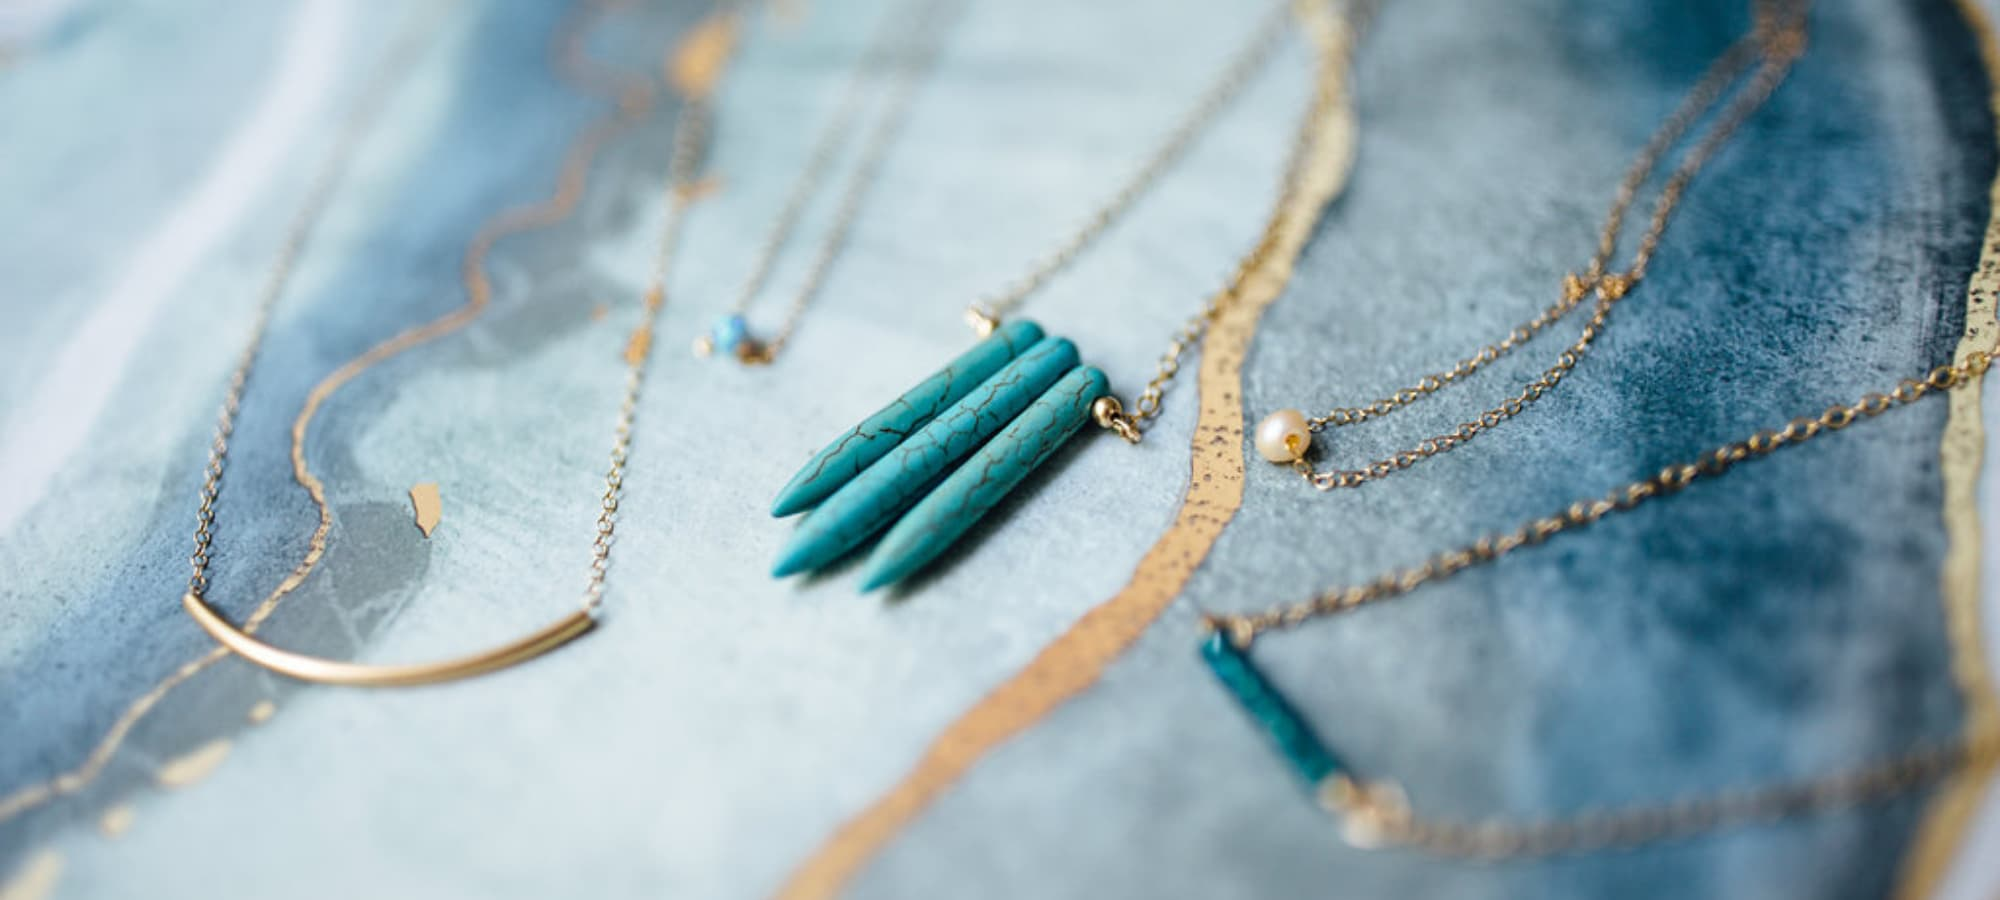 Tayo Collective handcrafted artisanal jewelry